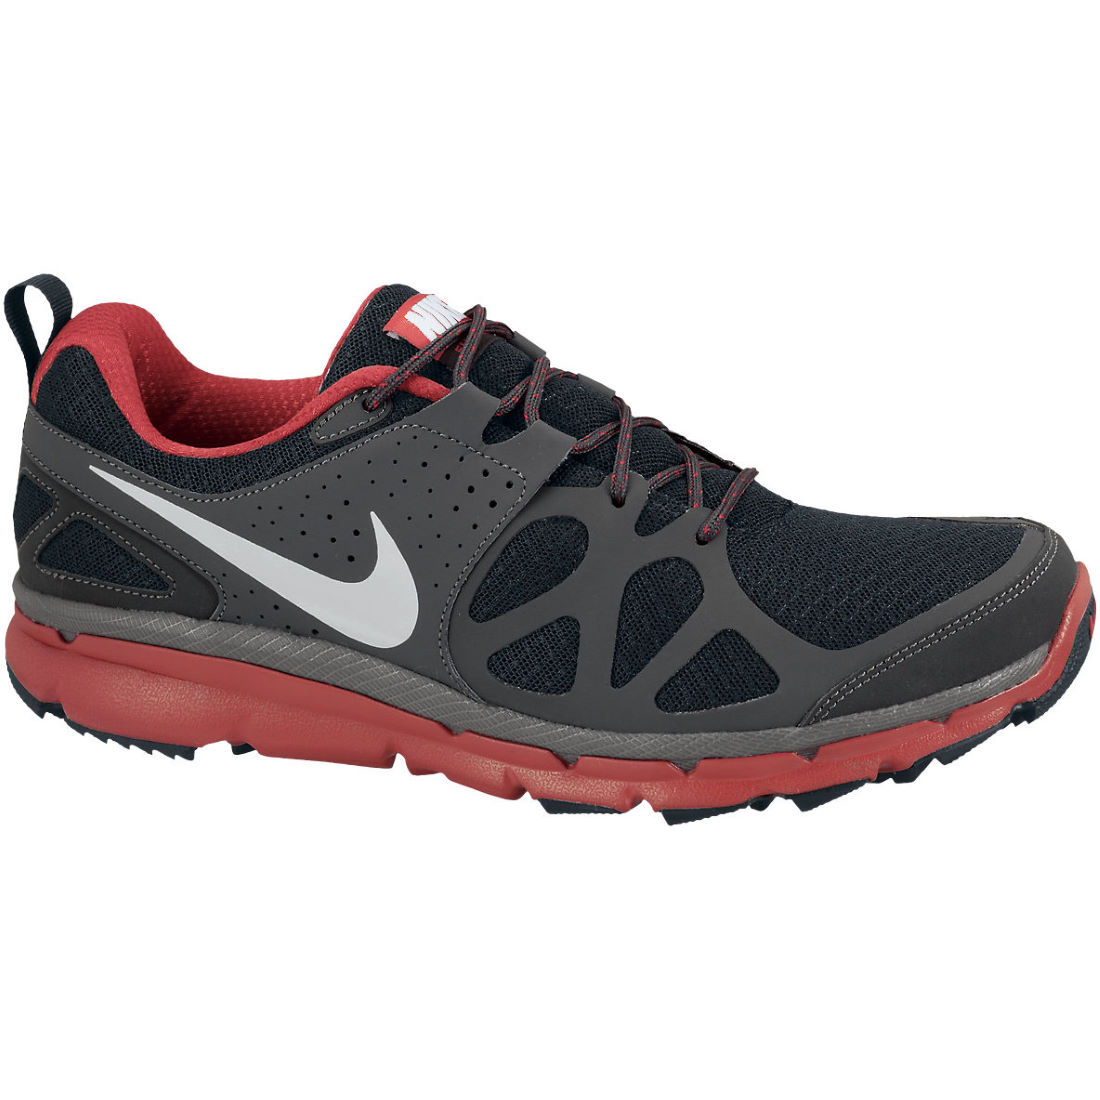 chaussures de running trail nike flex trail shoes aw12 wiggle france. Black Bedroom Furniture Sets. Home Design Ideas